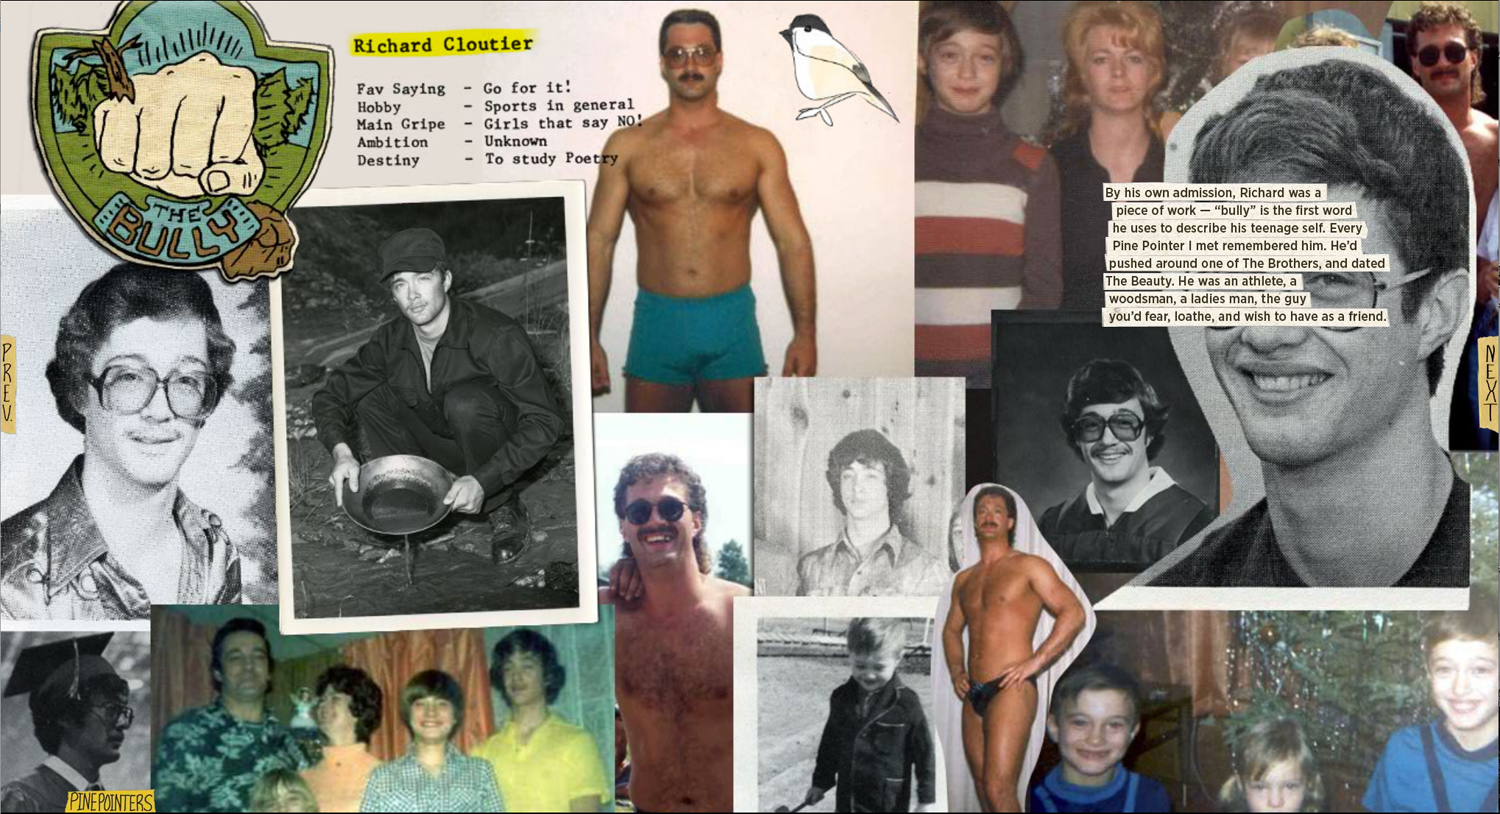 A page from Welcome to Pine Point showing vintage photos of Richard Cloutier, who was known as the town bully, but now keeps an online archive of his former high school. His archive was the starting point for the project.